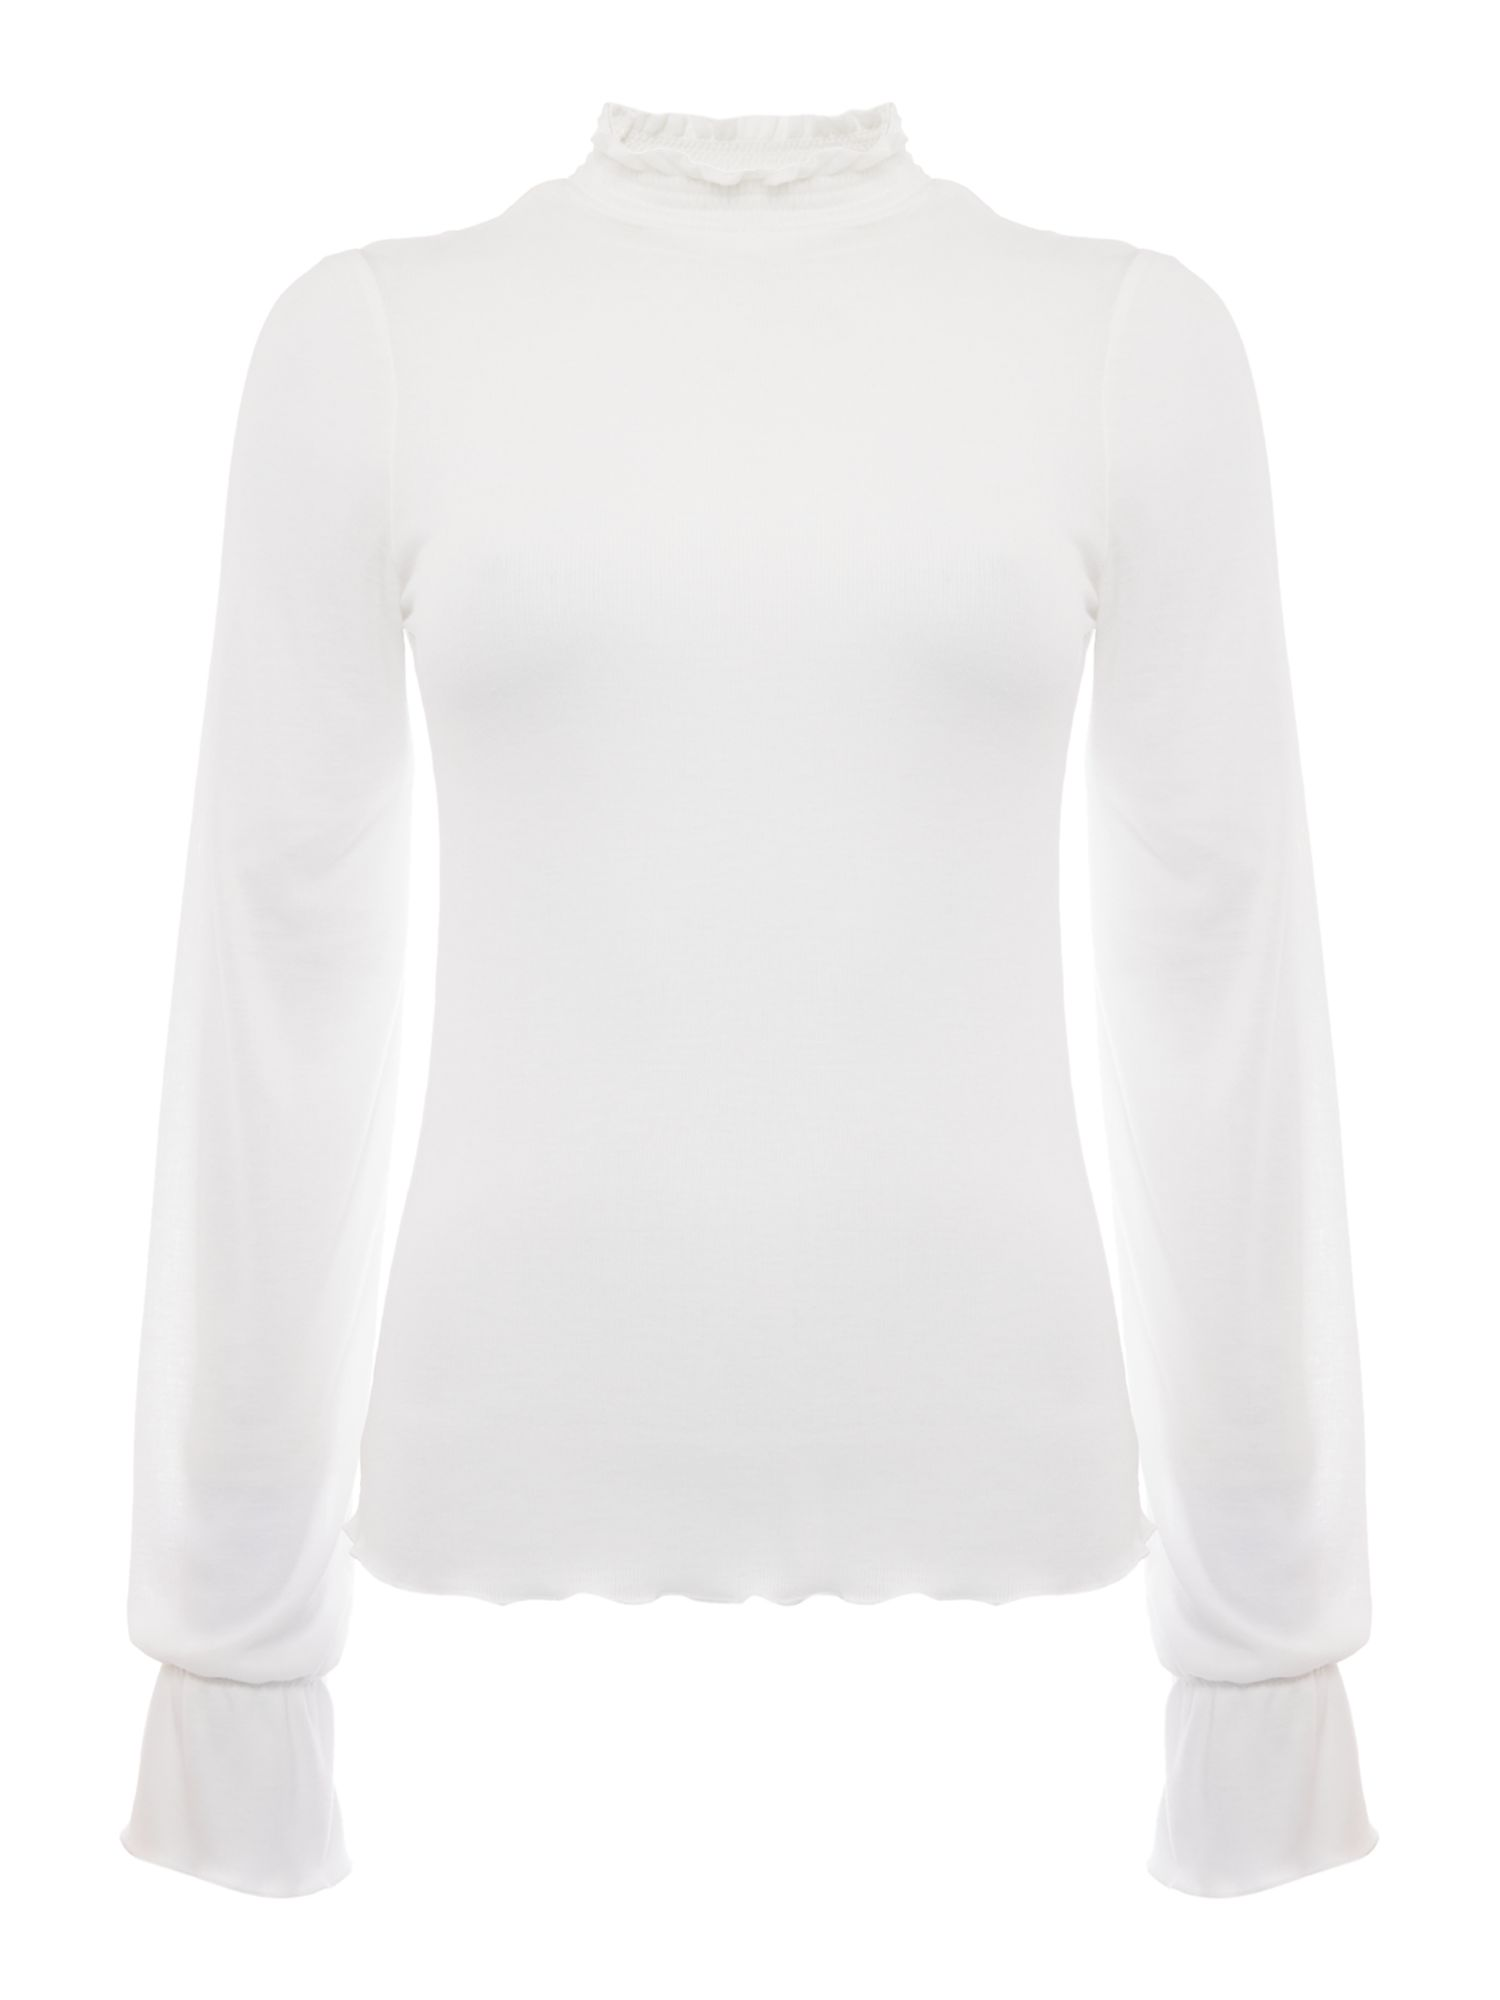 Free People Out Of Sight Mock Neck Top, Cream